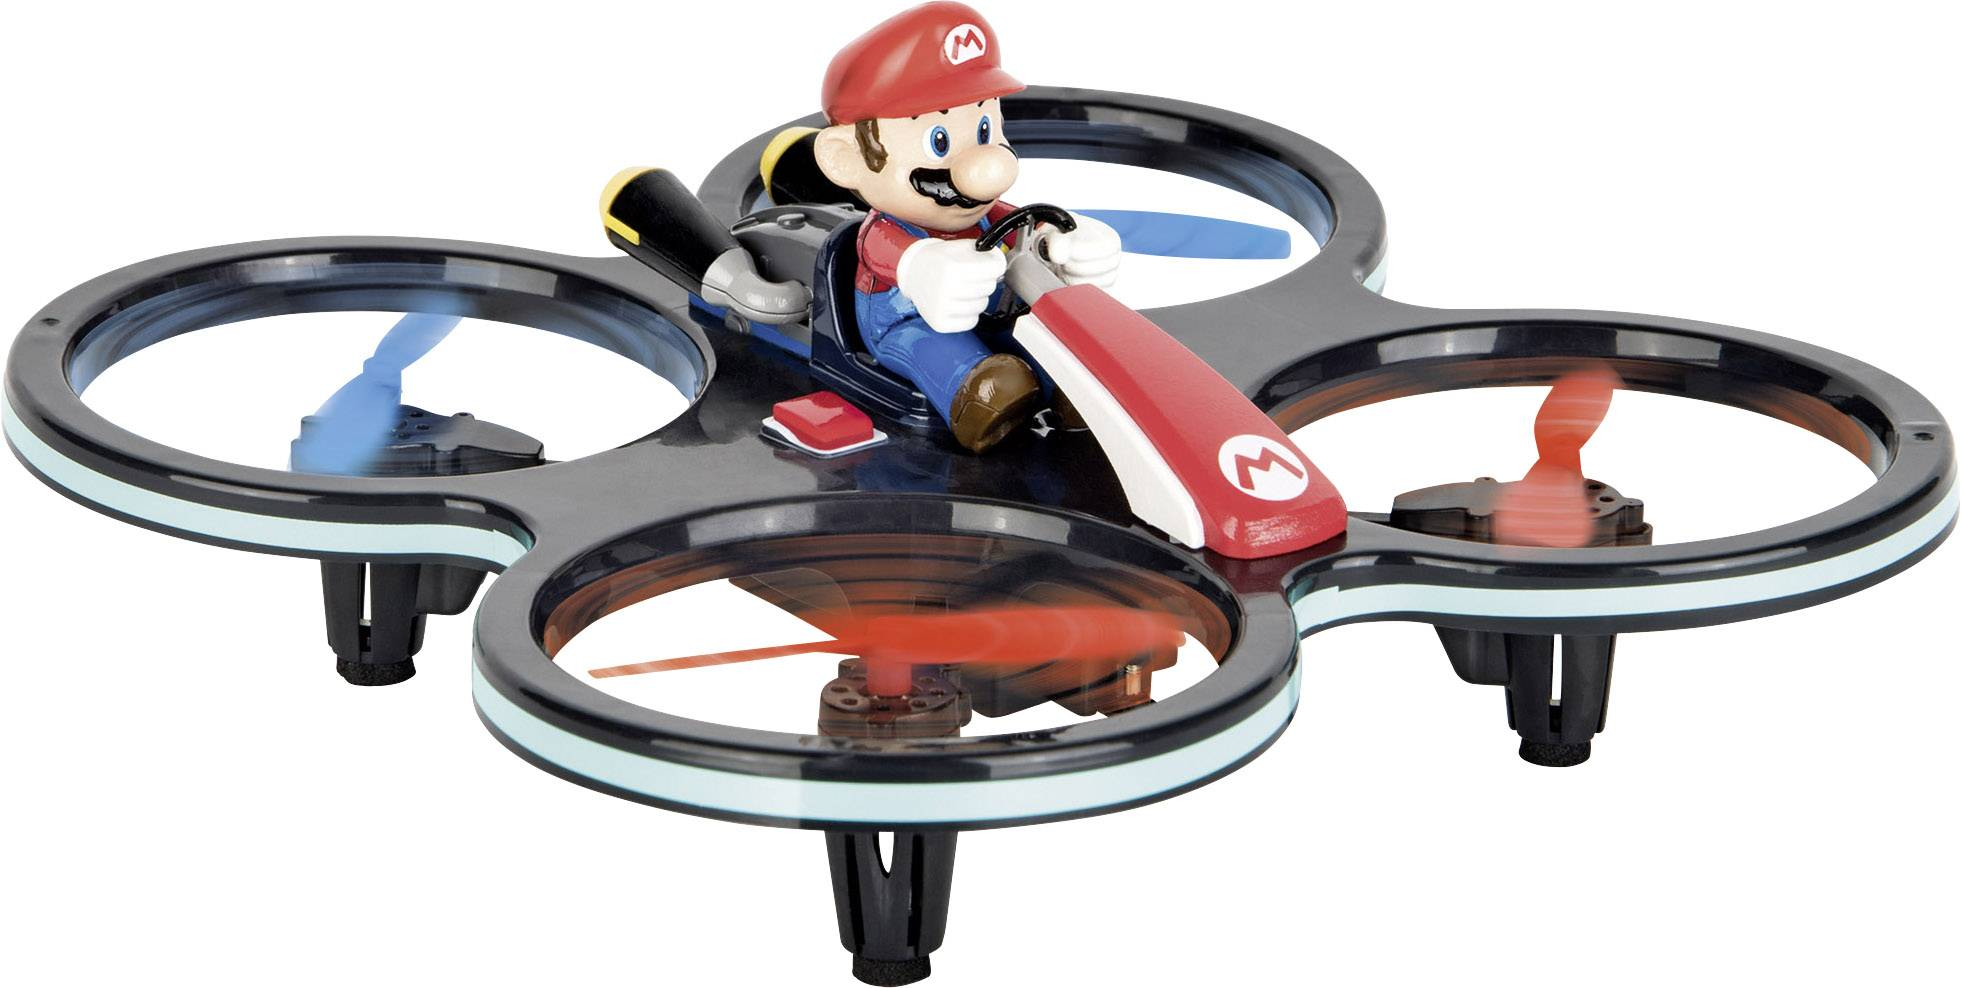 Dron Carrera RC Nintendo Mini Mario Copter, RtF